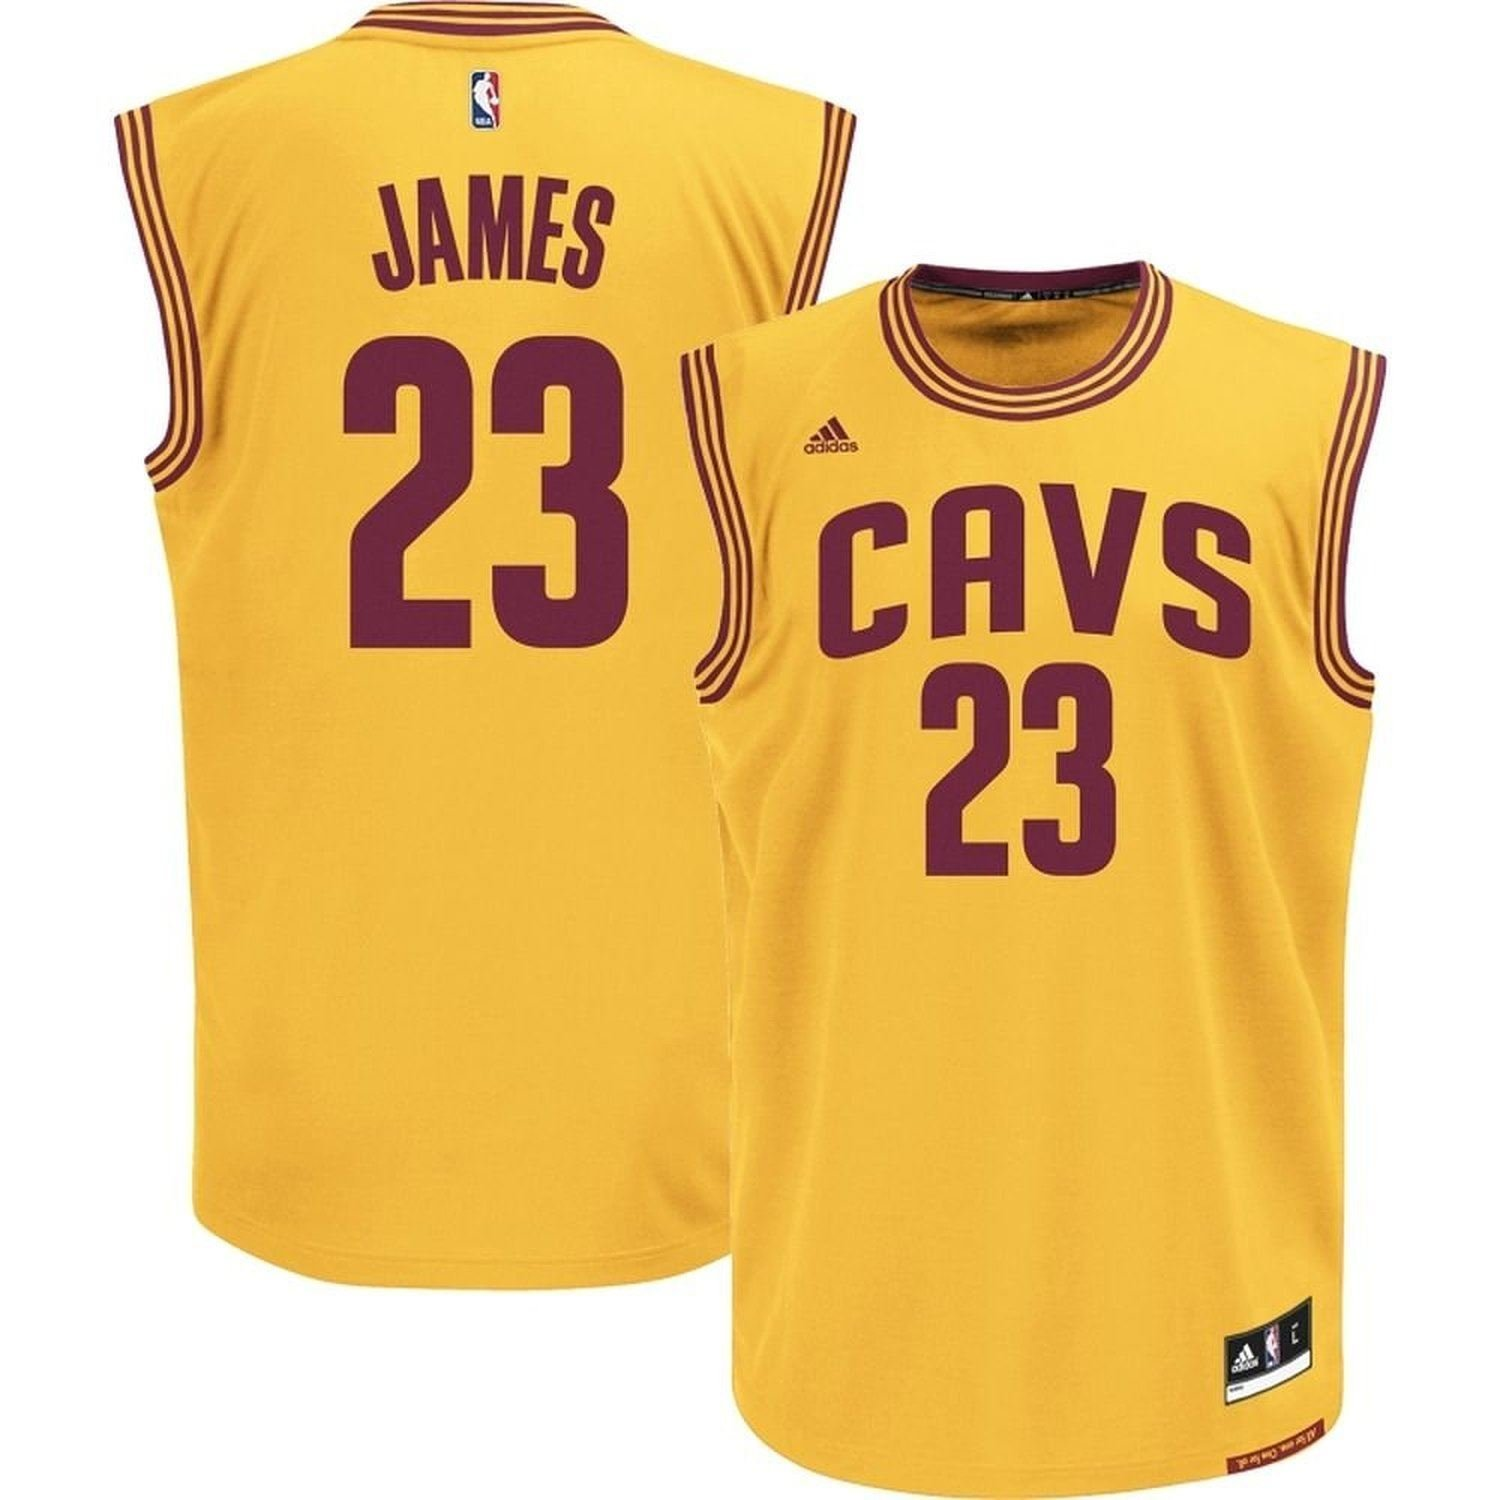 0abcc8303d0e Amazon.com   Cleveland Cavaliers Lebron James Youth 2nd Alternate Replica  Jersey   Sports   Outdoors